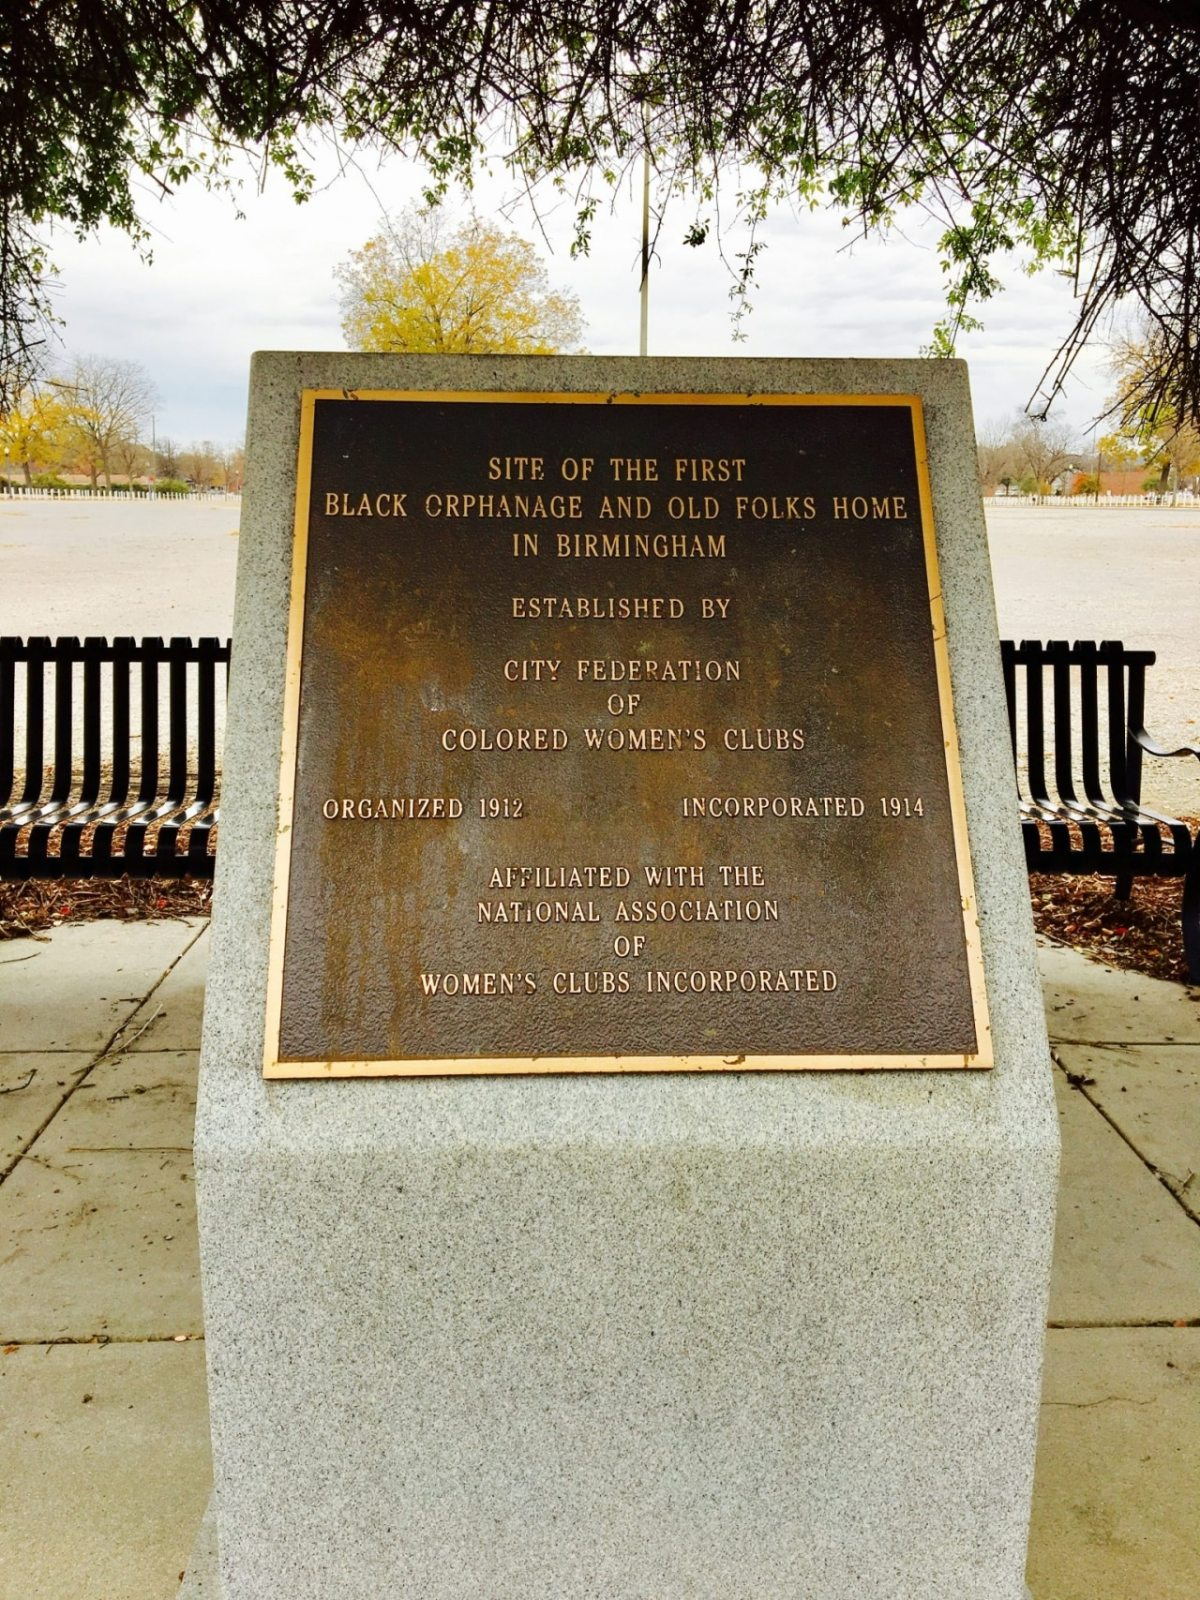 Discovered at Legion Field – Monument to city's first black orphanage and old folks home